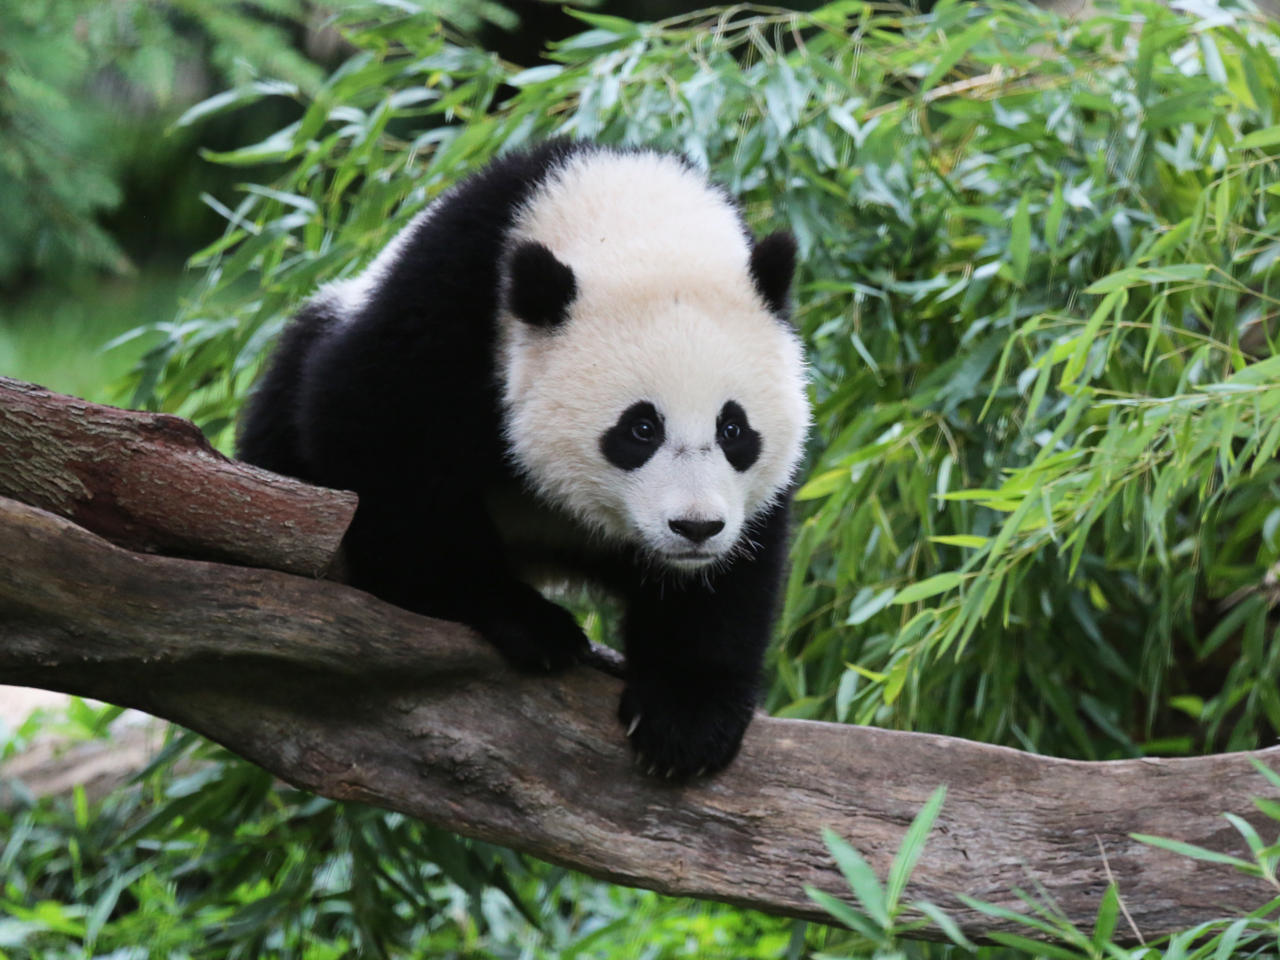 Bao Bao the panda prepares for move to China from the